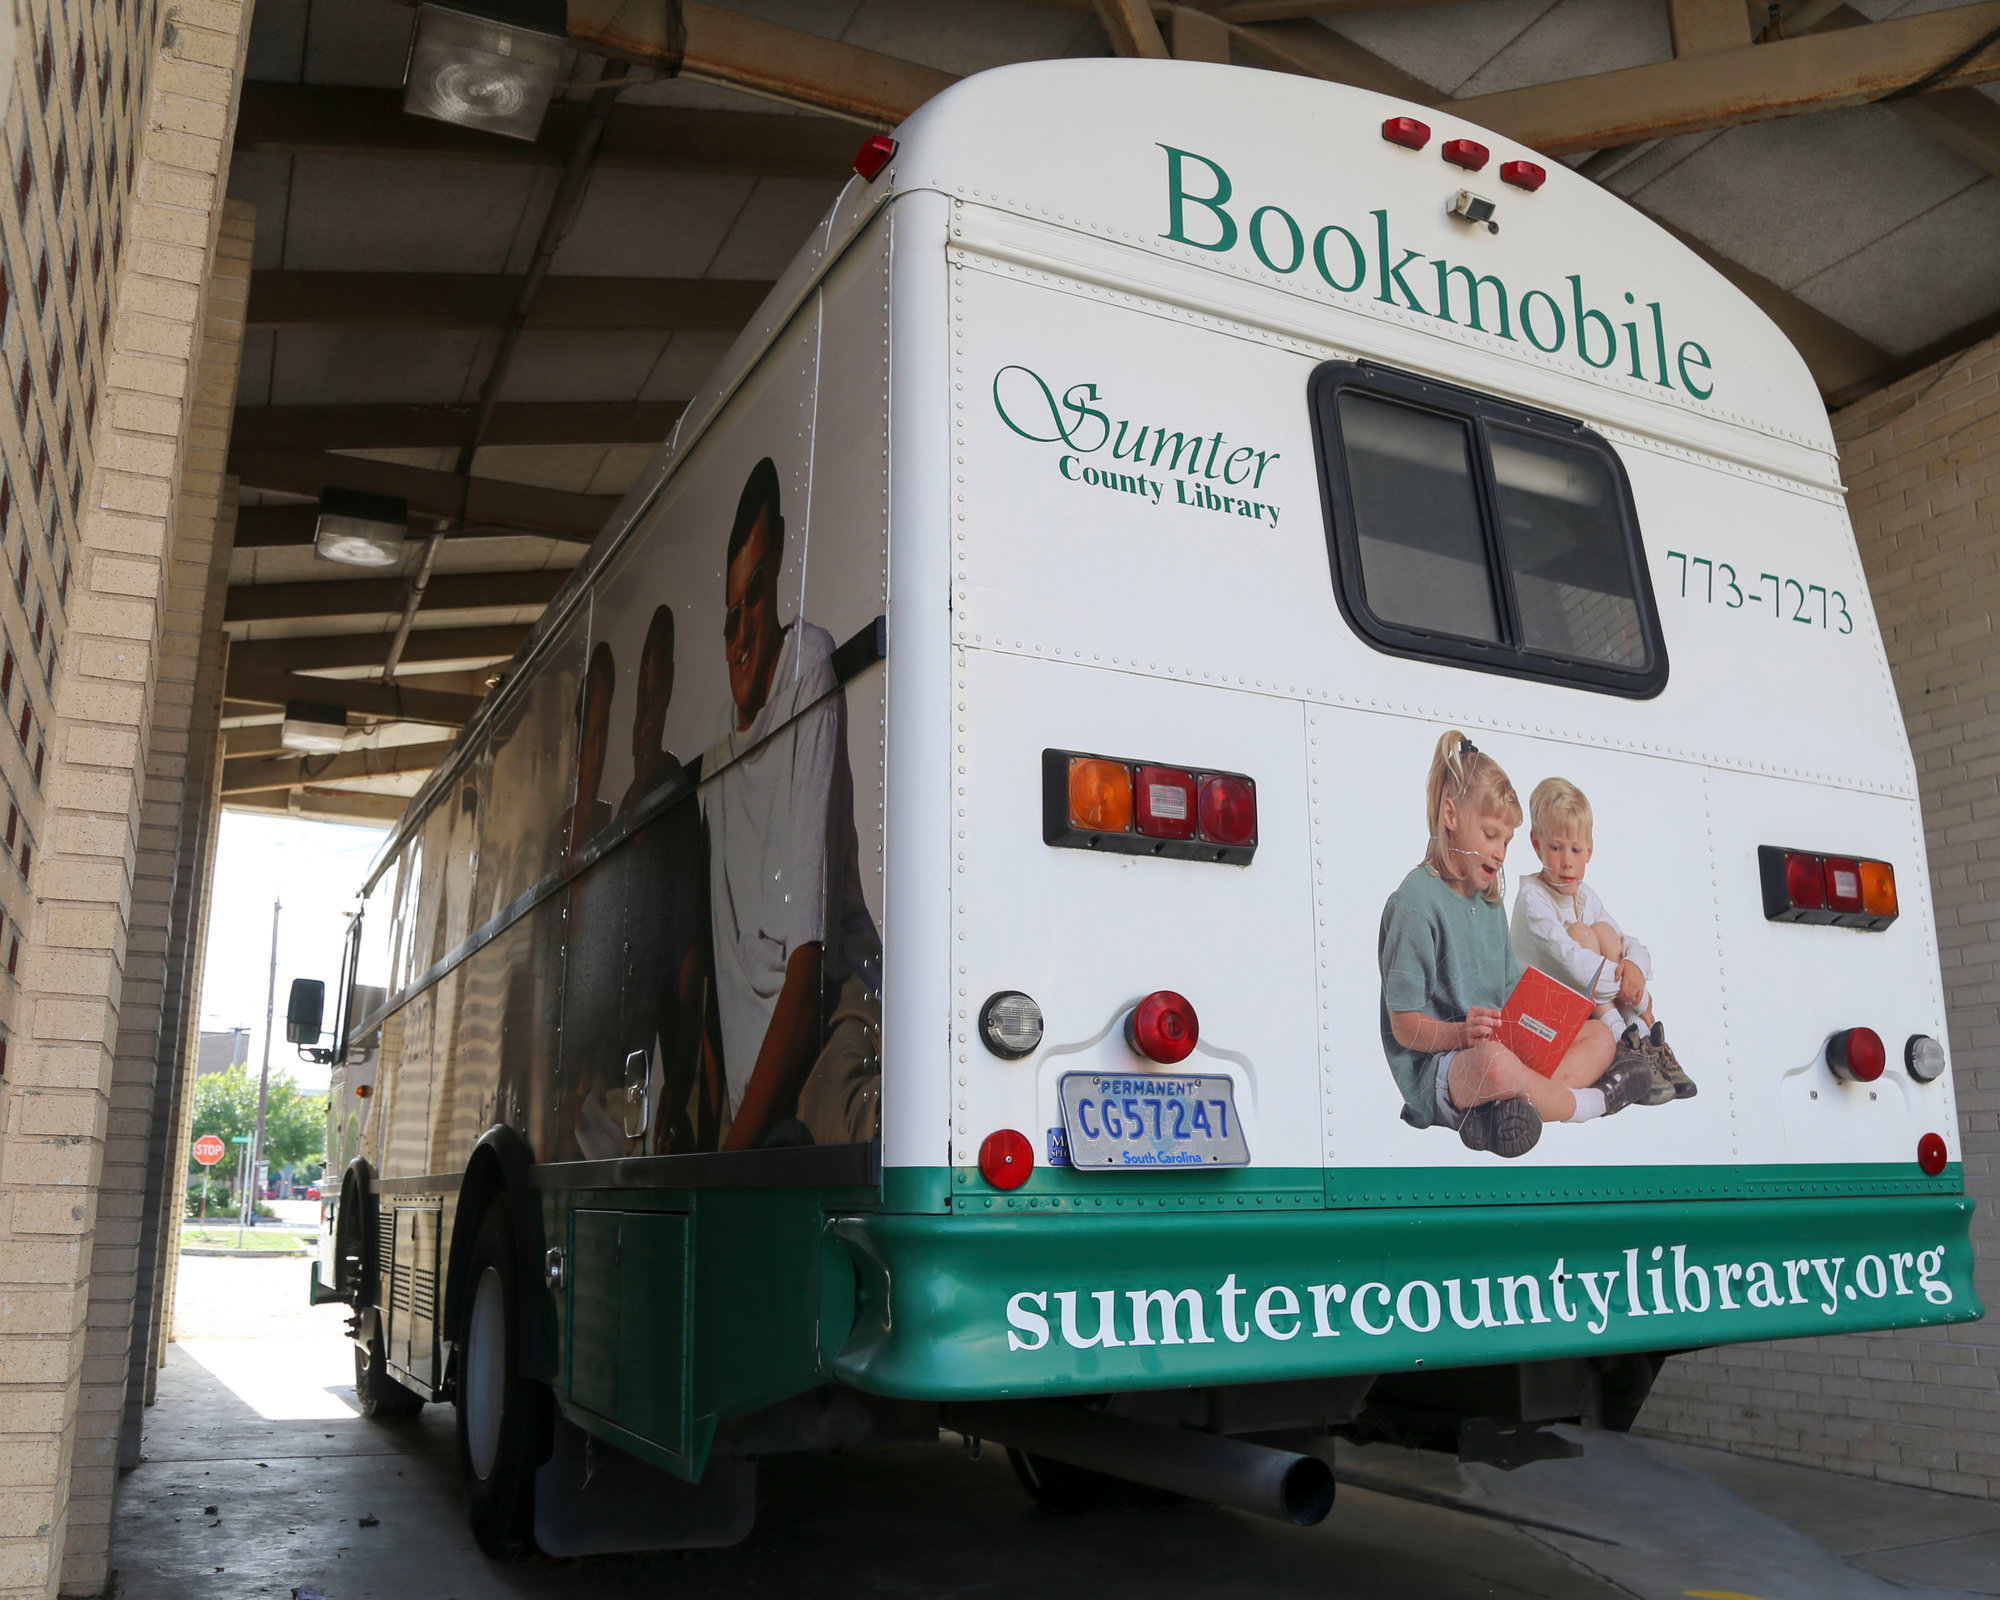 The Sumter County Library Bookmobile can bring materials to people who don't have easy access to library branches.